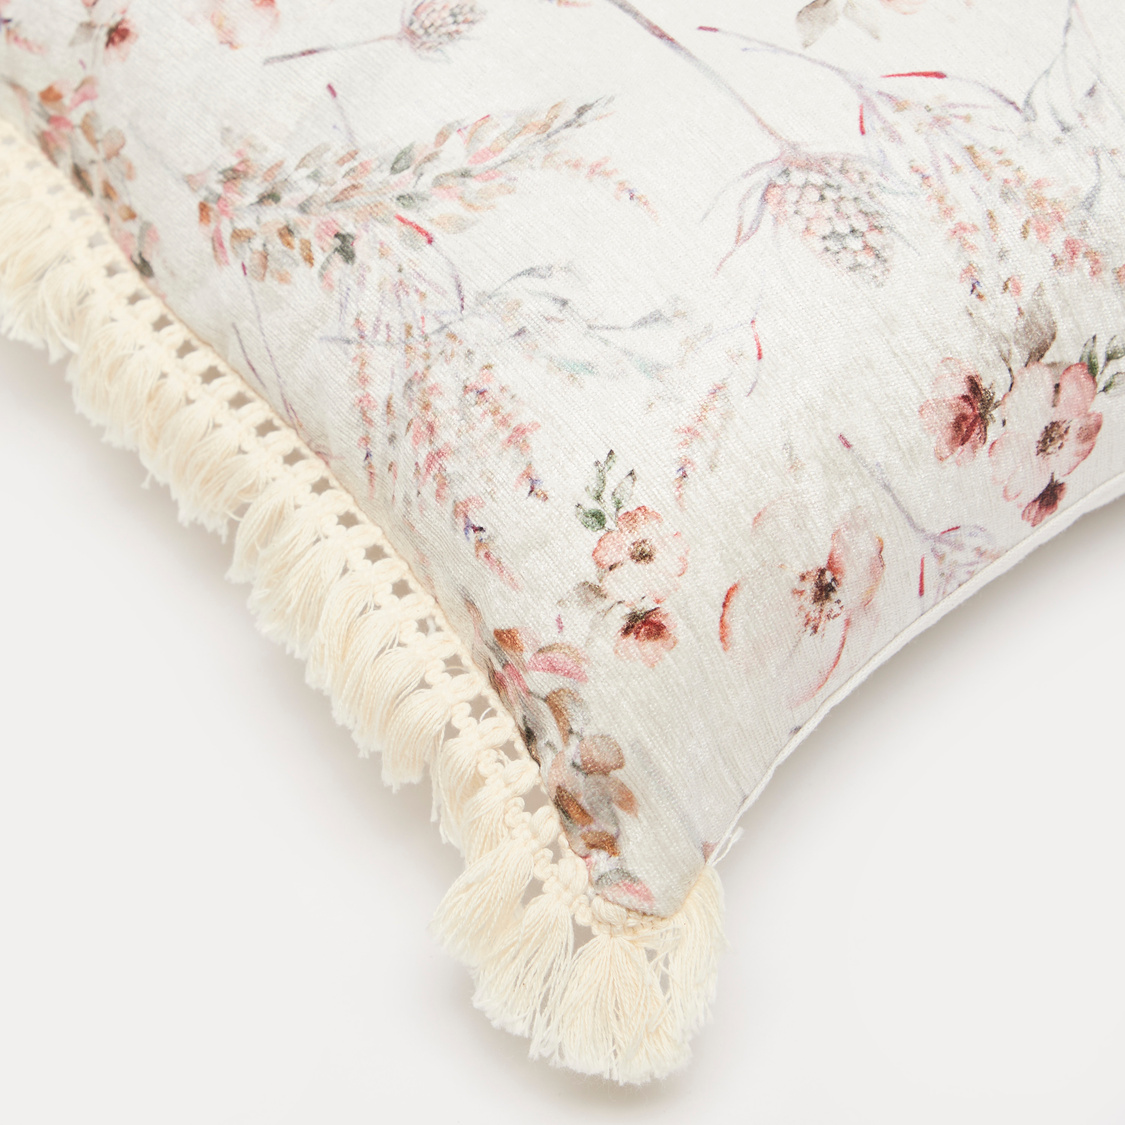 Printed Filled Cushion with Tassels - 45x45 cms